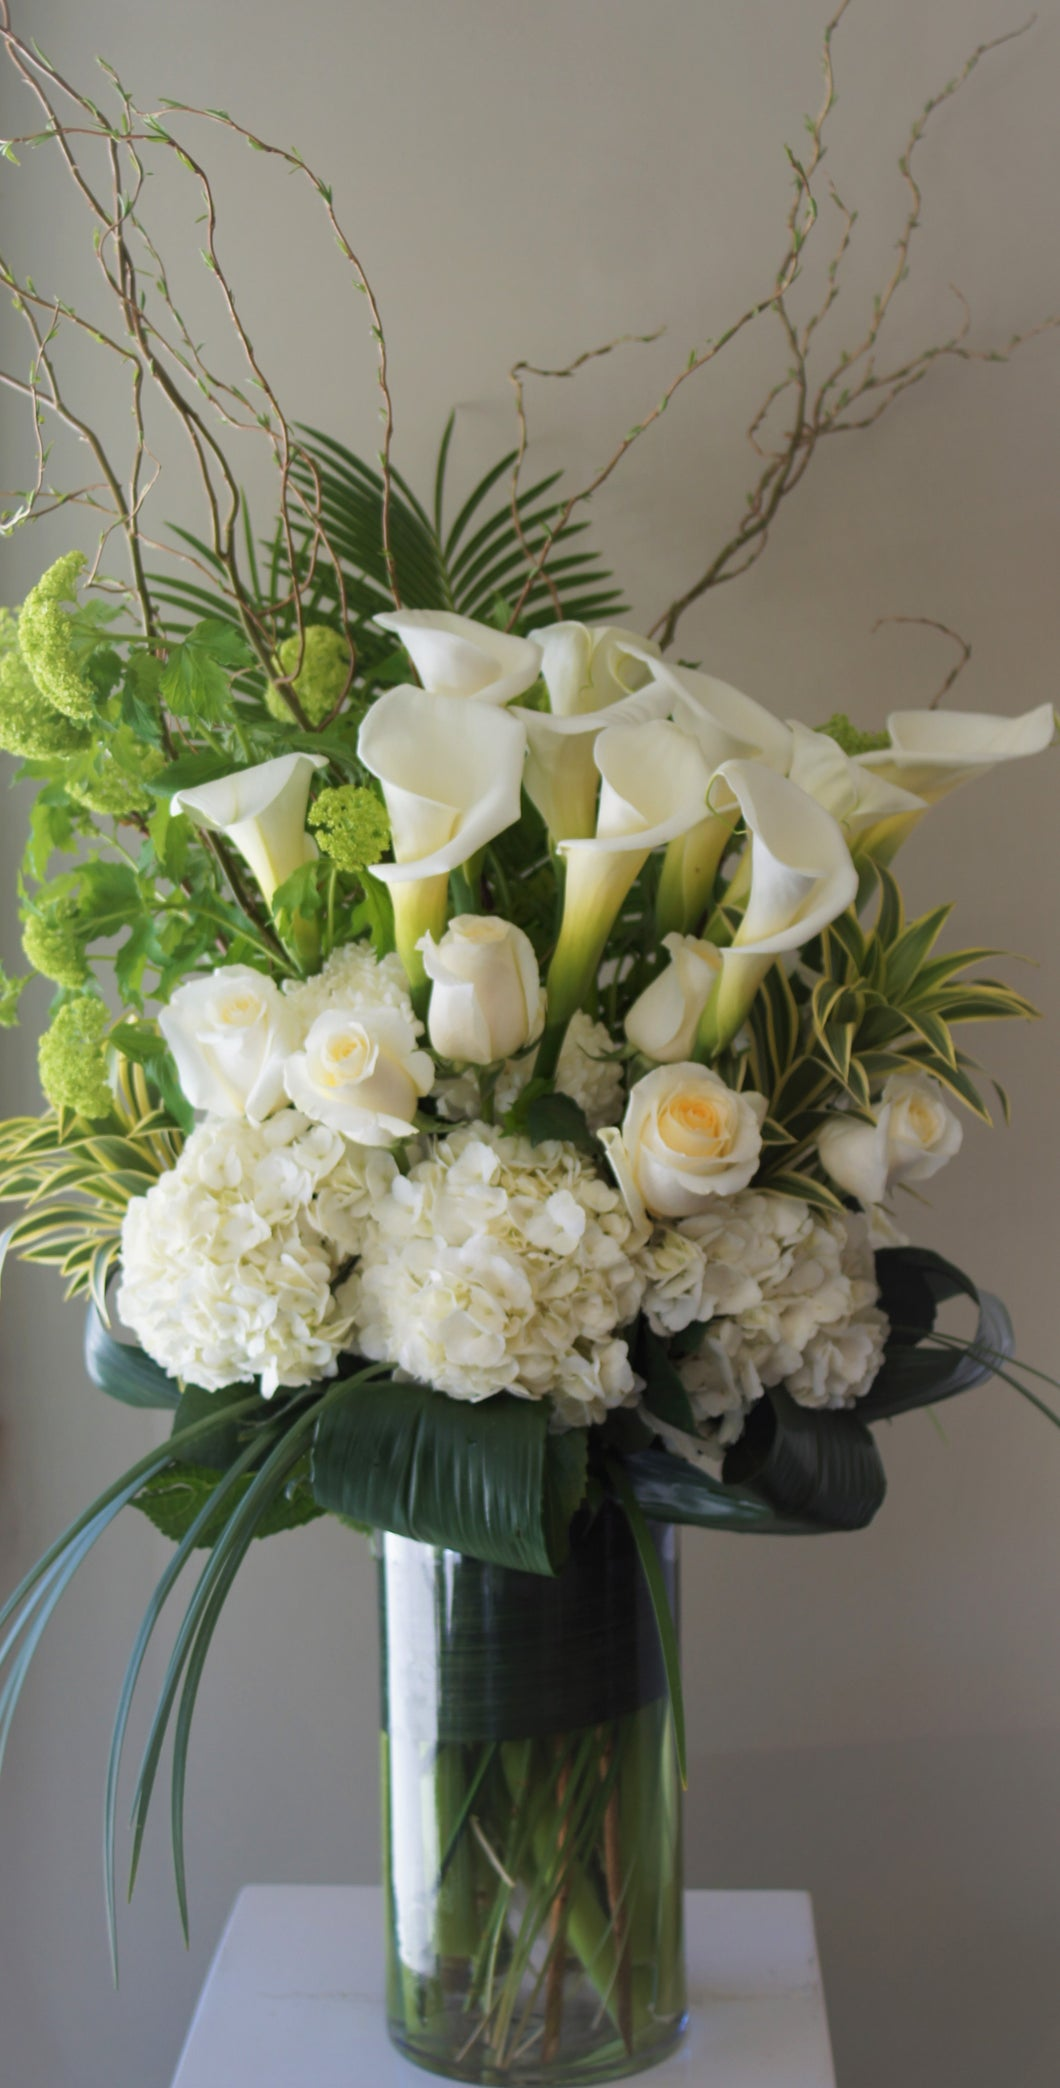 F14 -  Modern White and Green Vase Arrangement - Flowerplustoronto